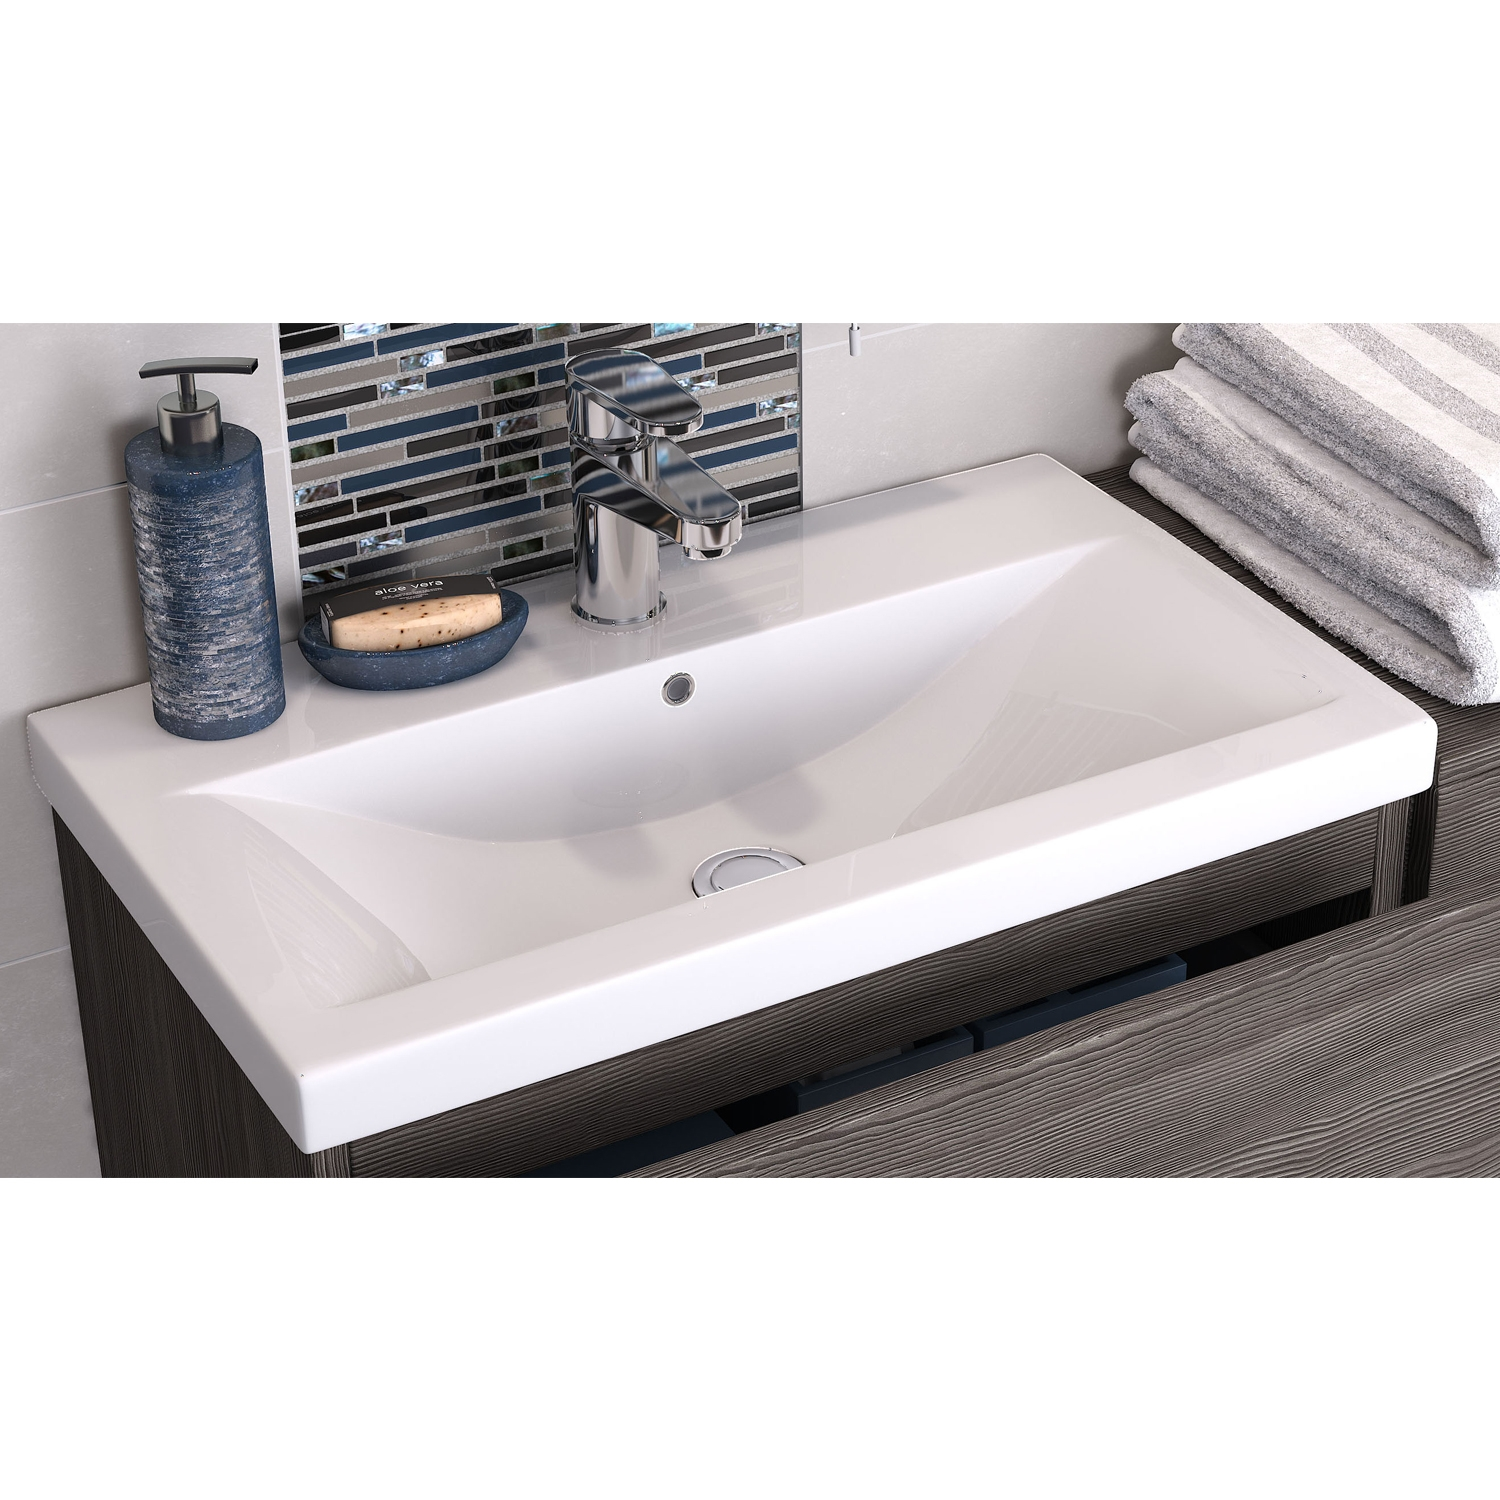 Hudson Reed Urban 1 Wall Hung Vanity Unit with Mid-Edged Basin 600mm Wide Grey Avola 1 Tap Hole